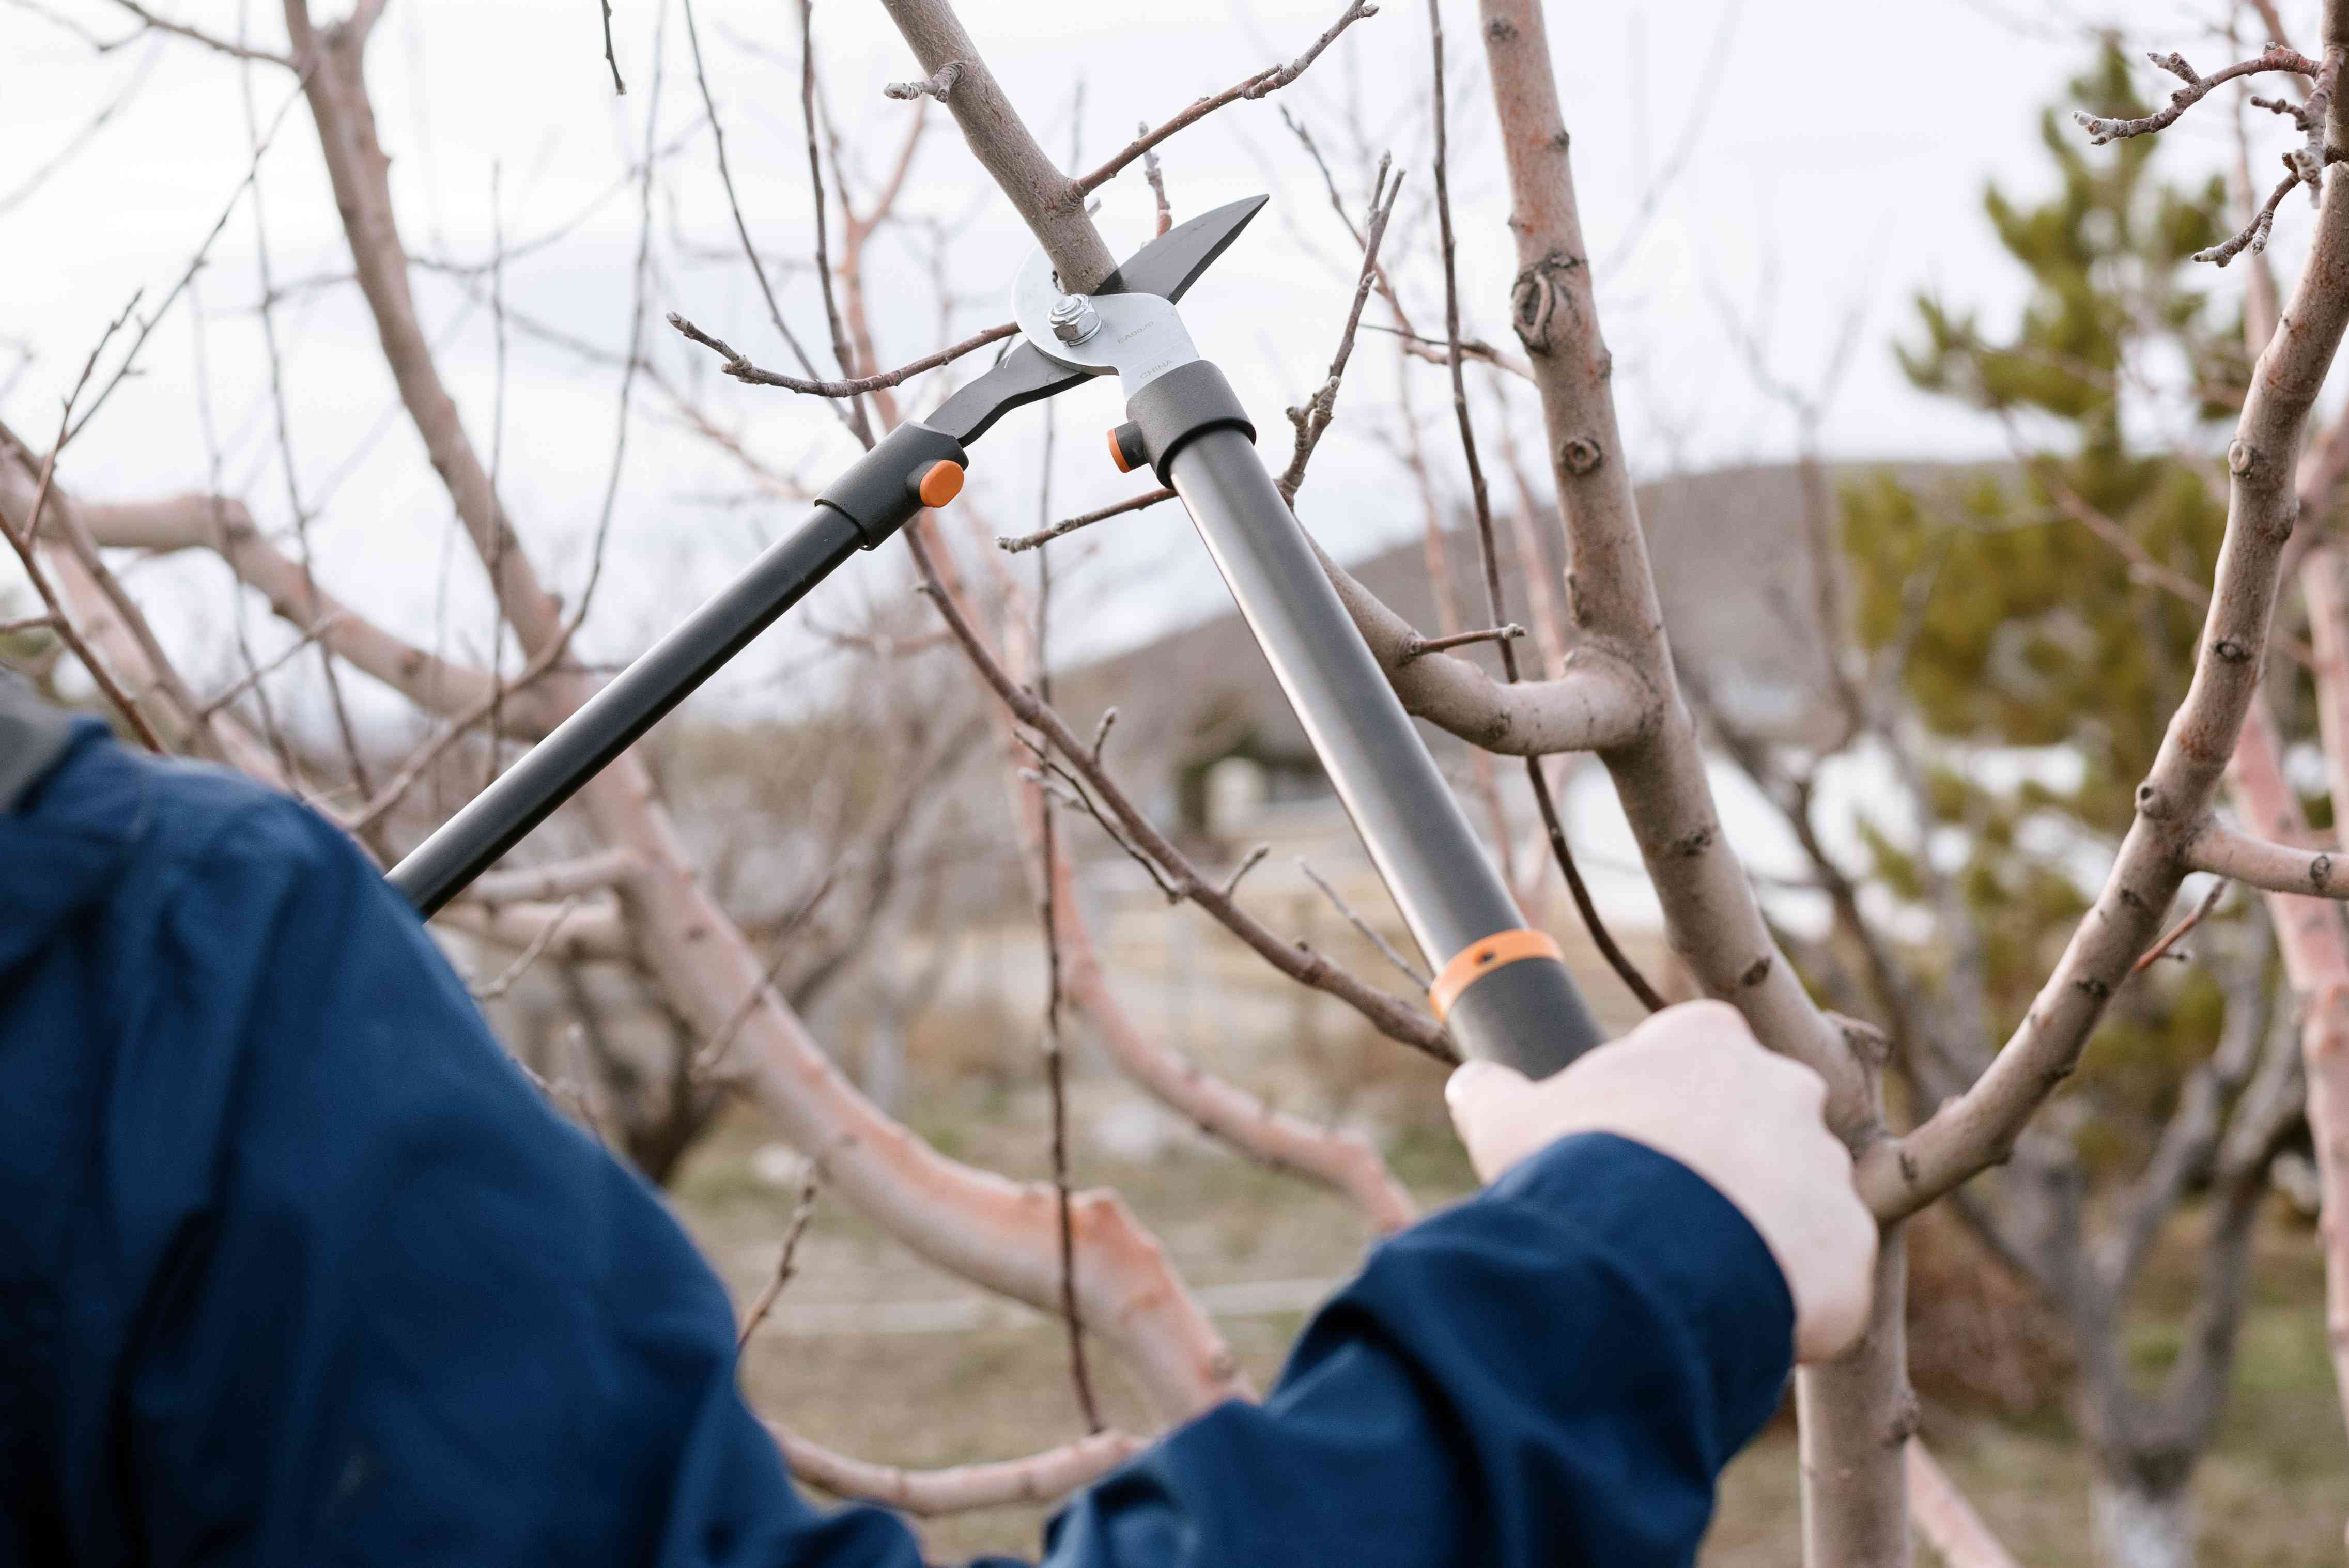 Bypass lopper being used to cut dry tree branch